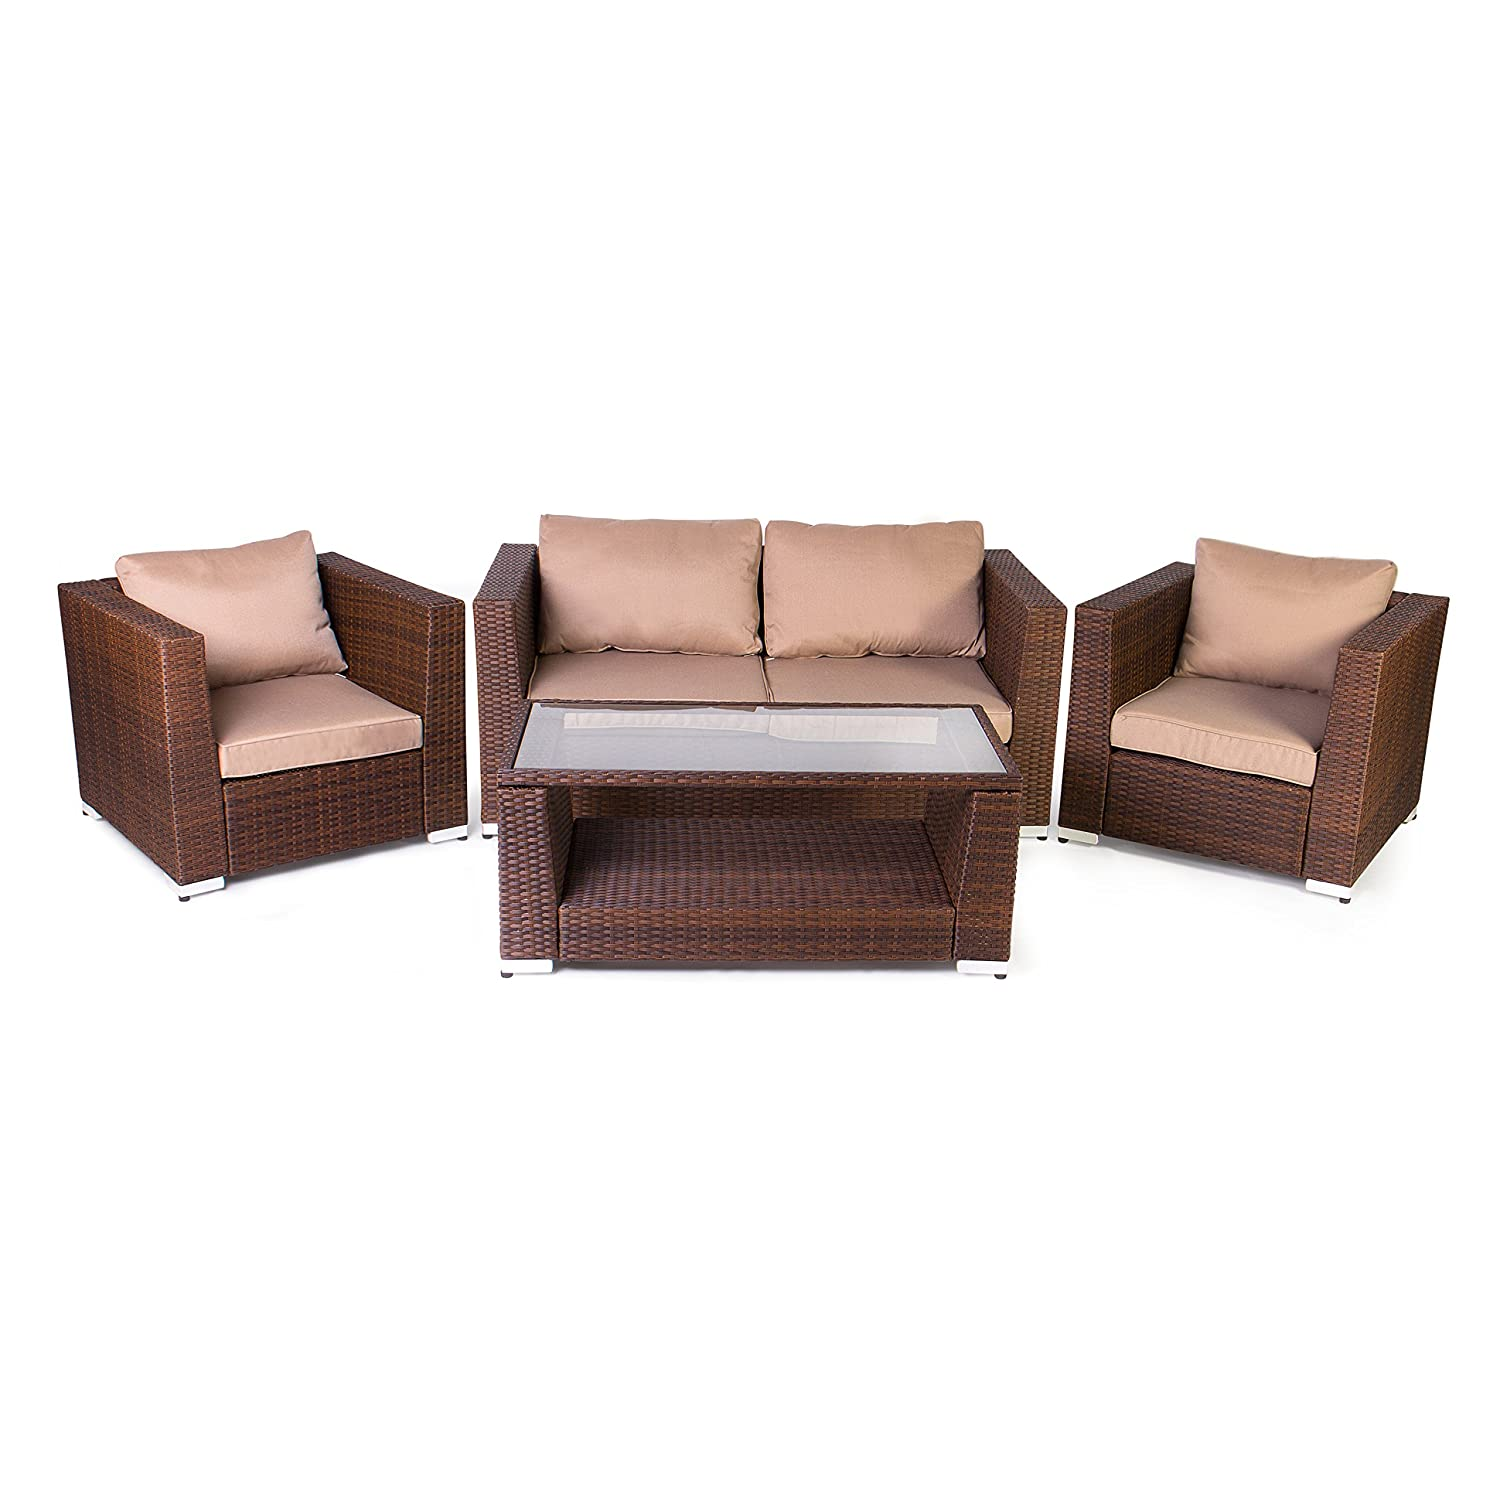 Vanage Gartenmobel Set Rom Rattan Optik Polyrattan Lounge Mobel